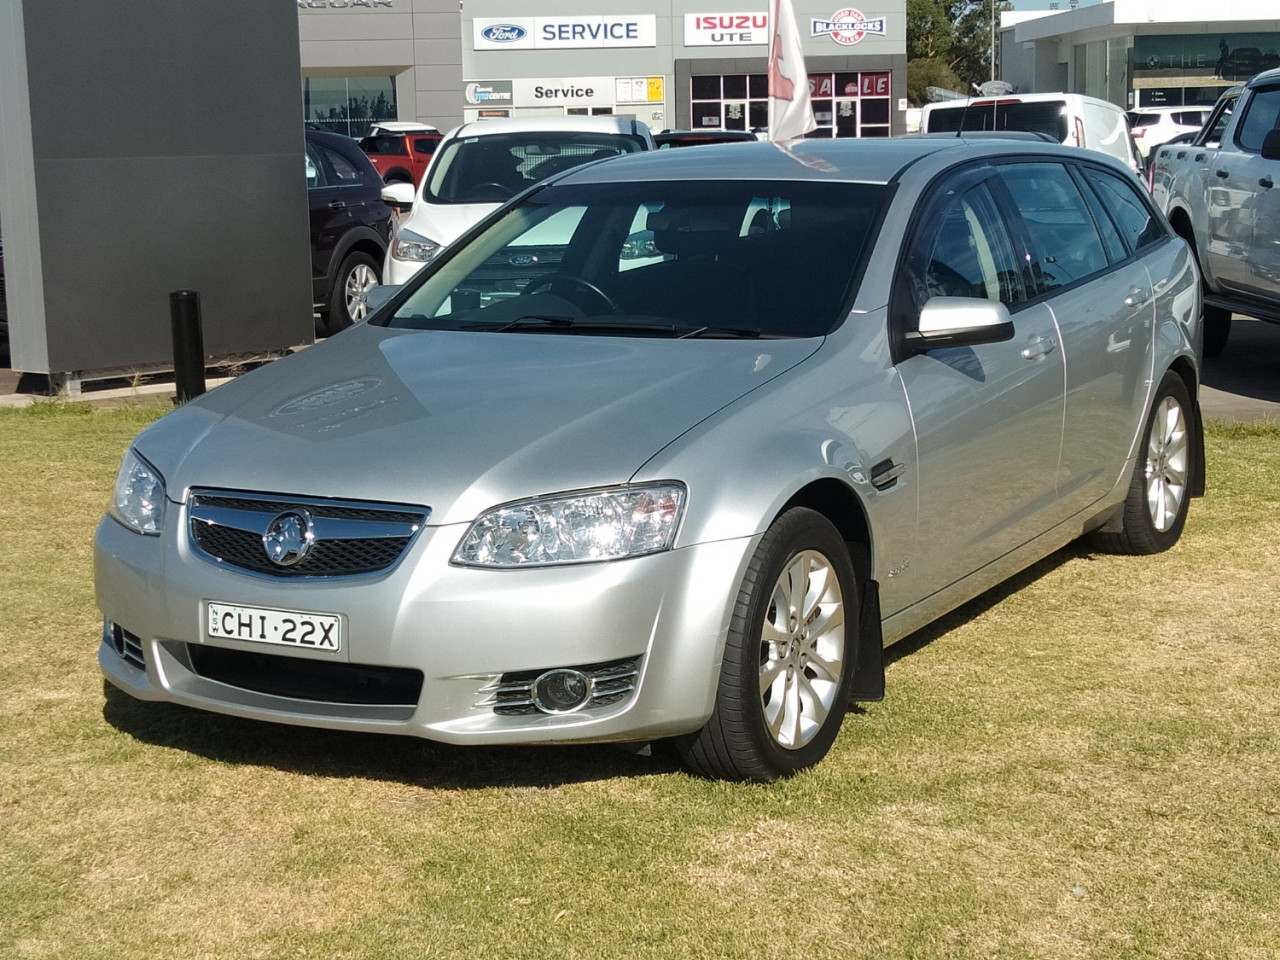 2012 Holden Berlina VE II MY12 Wagon Image 1